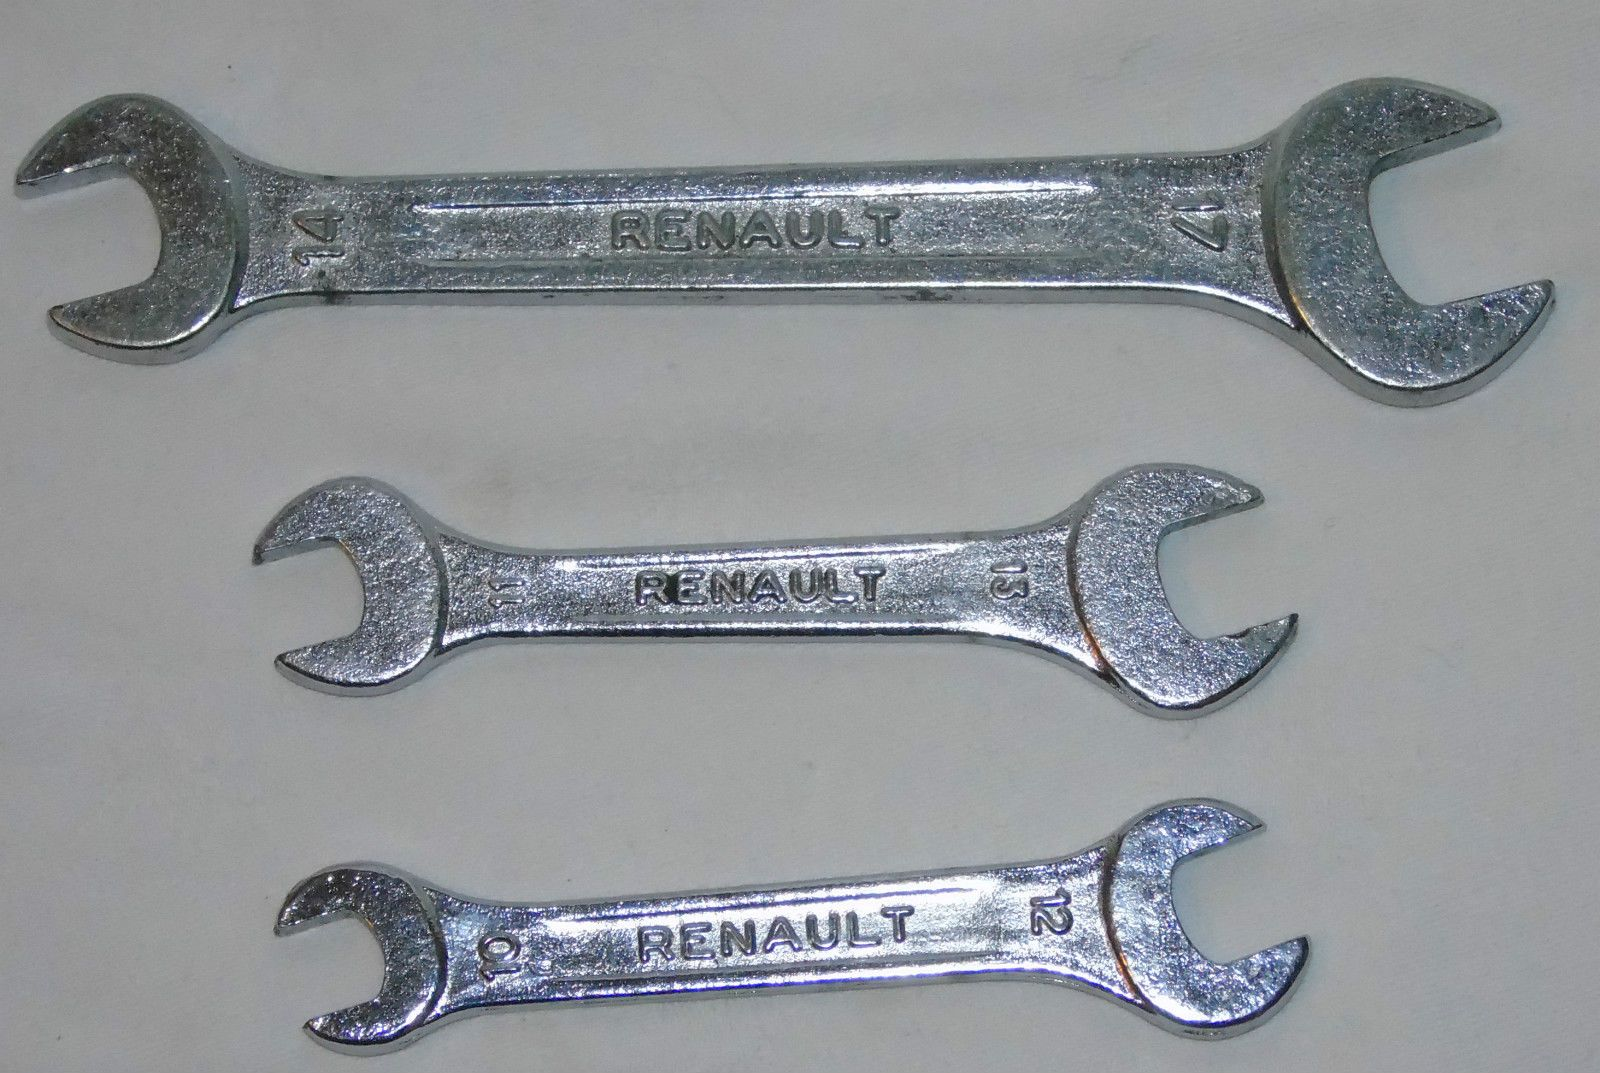 Vintage Tools Vehicle Parts & Accessories A Collection Of 3 Vintage Spanners